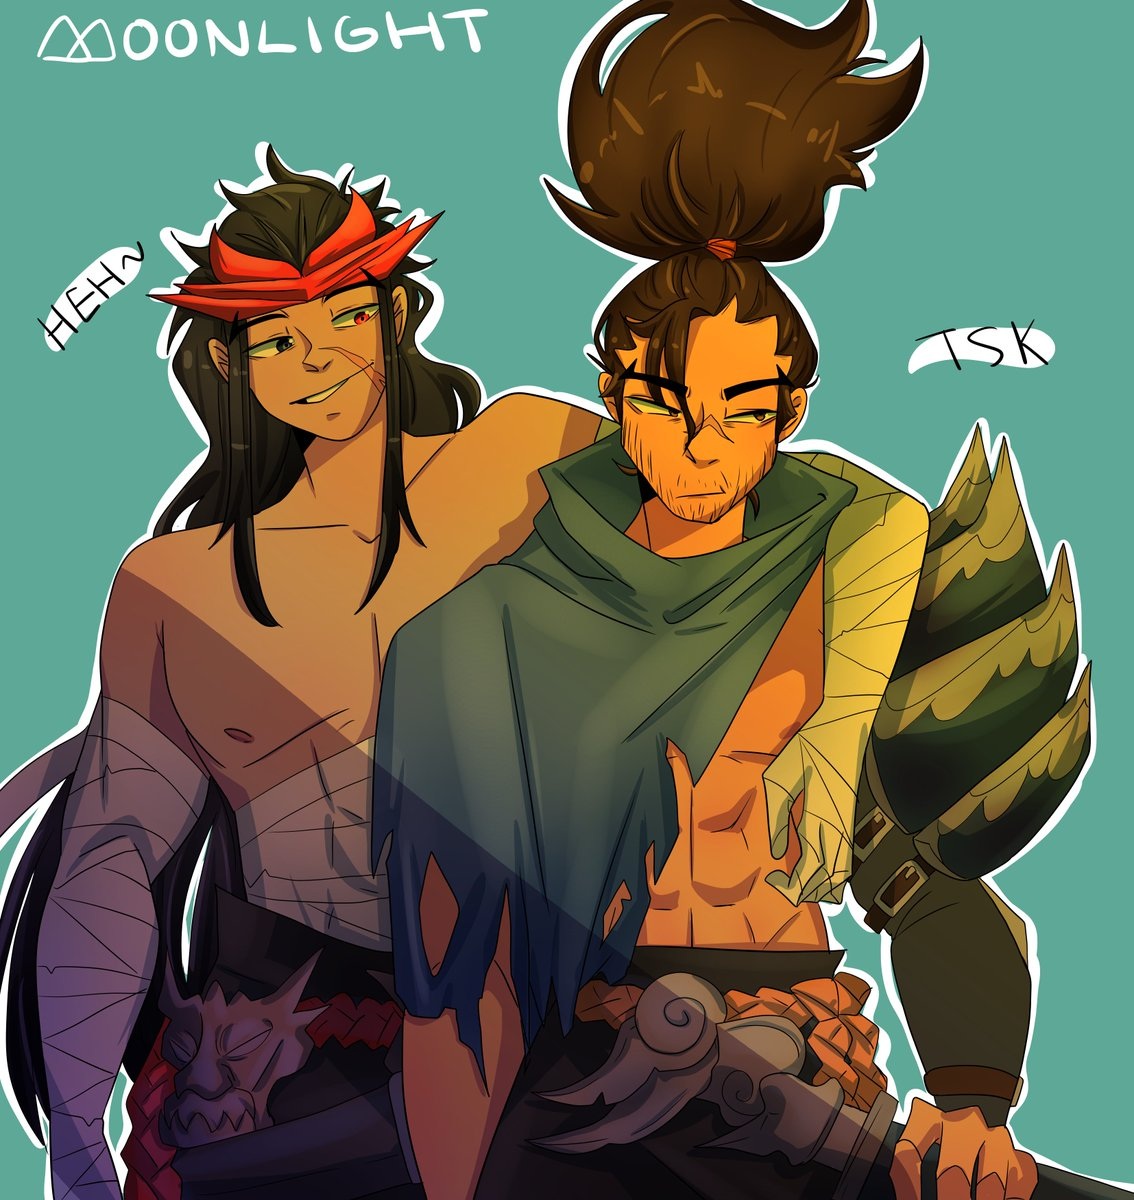 wholesome wind brothers from #LeagueOfLegends :)  #LeagueOfLegendsFanArt #yasuo #yone #art #lol